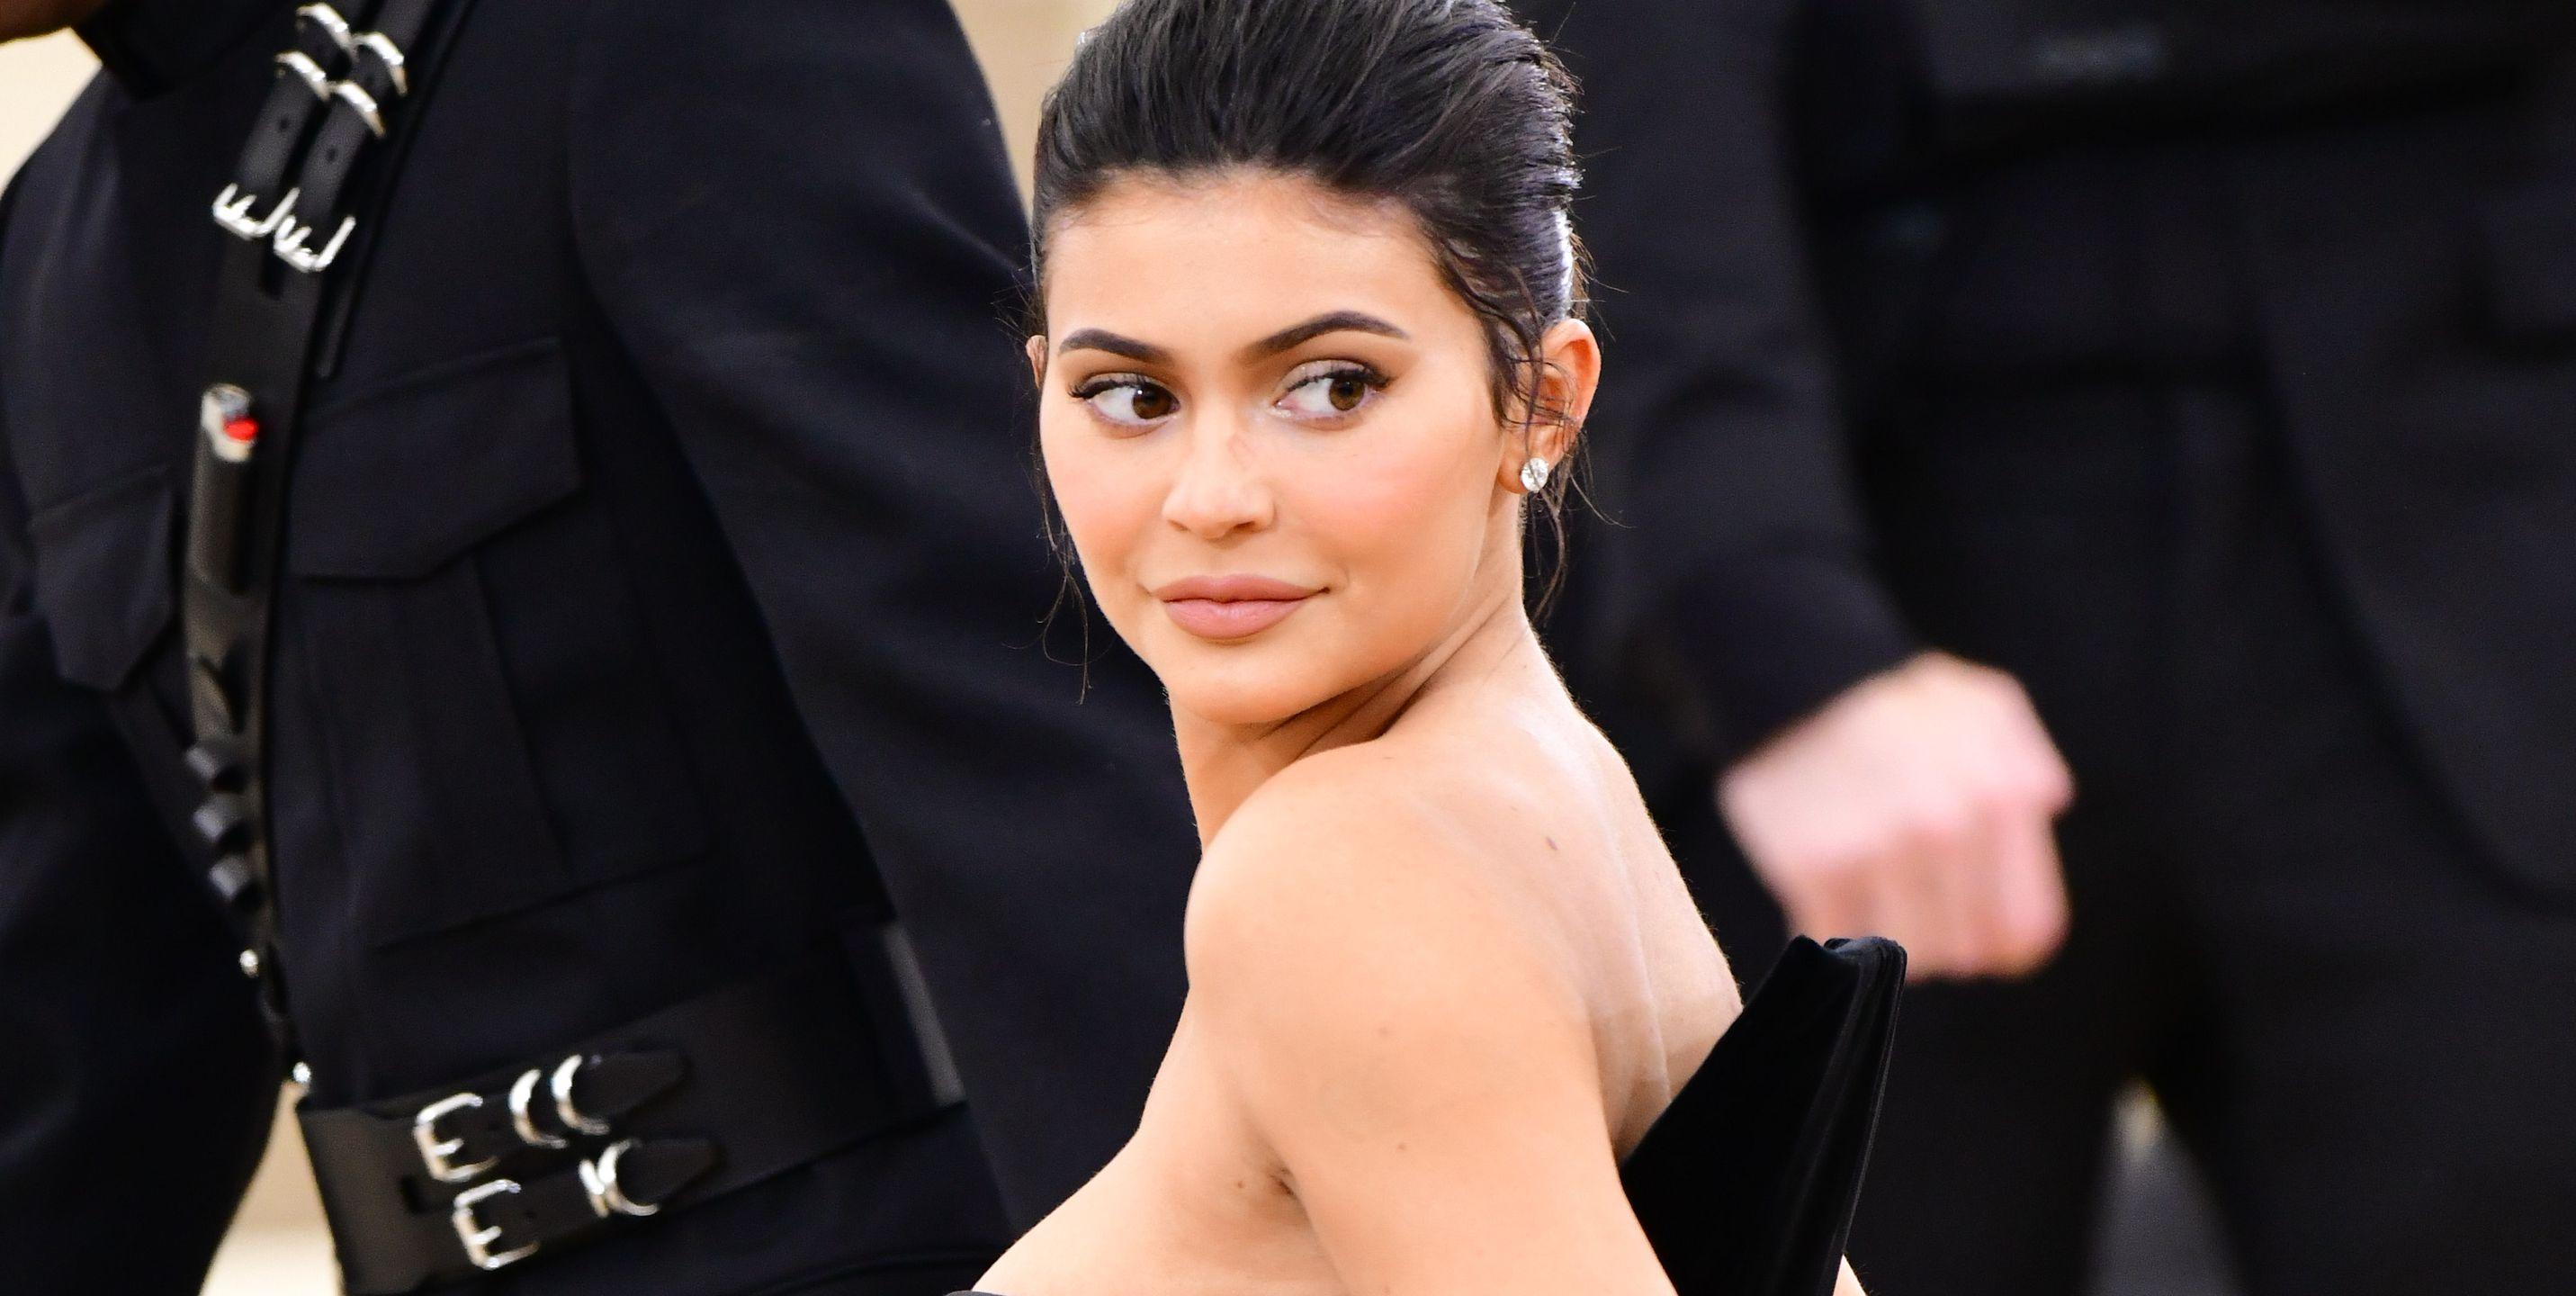 There's Now a GoFundMe Page Dedicated To Making Kylie Jenner A Billionaire